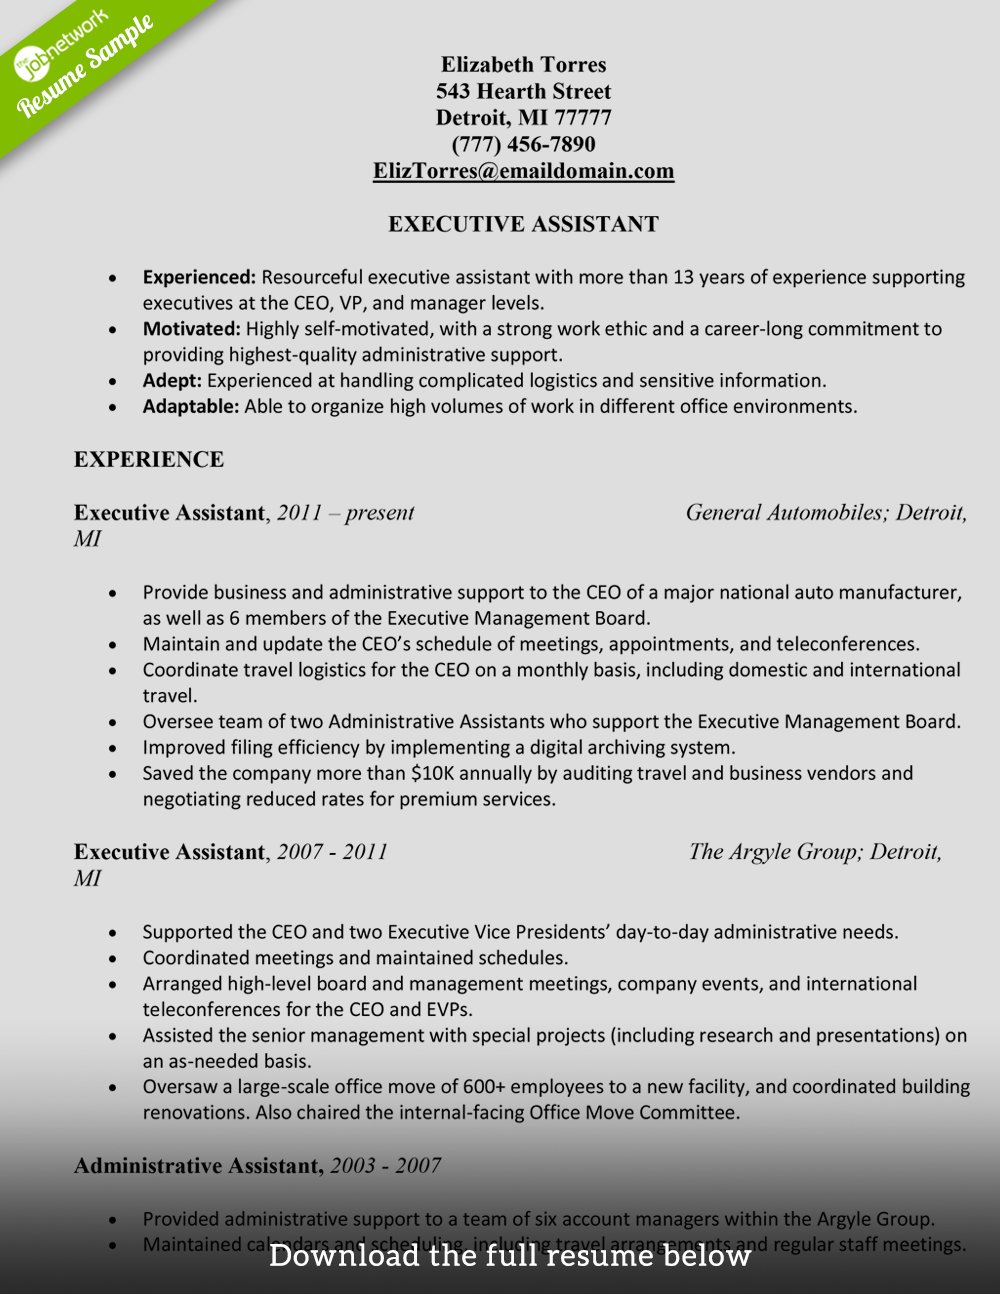 administrative assistant resume elizabeth torres - Administrative Assistant Resume Sample